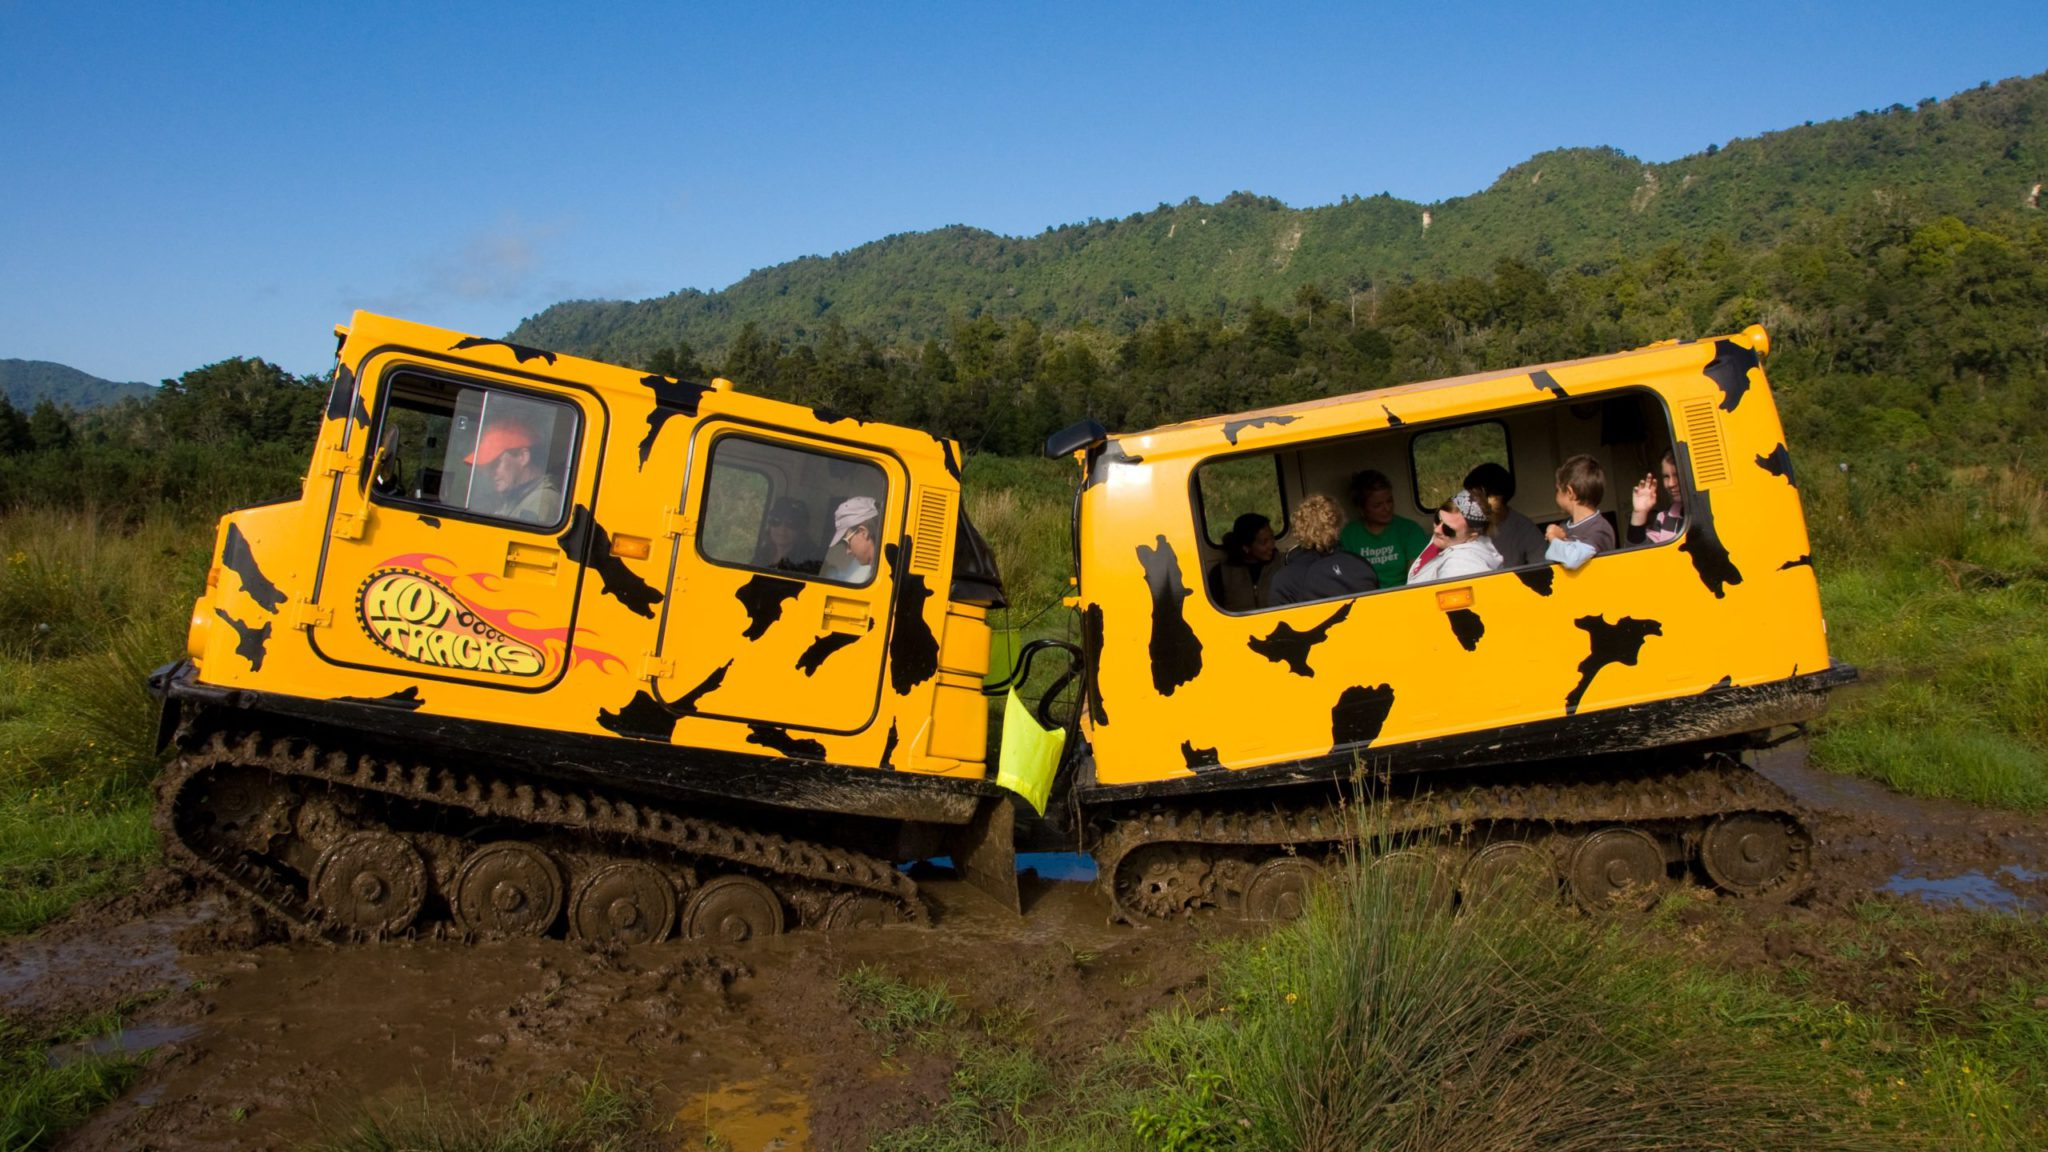 Greymouth Hagglund off-road adventure in New Zealand